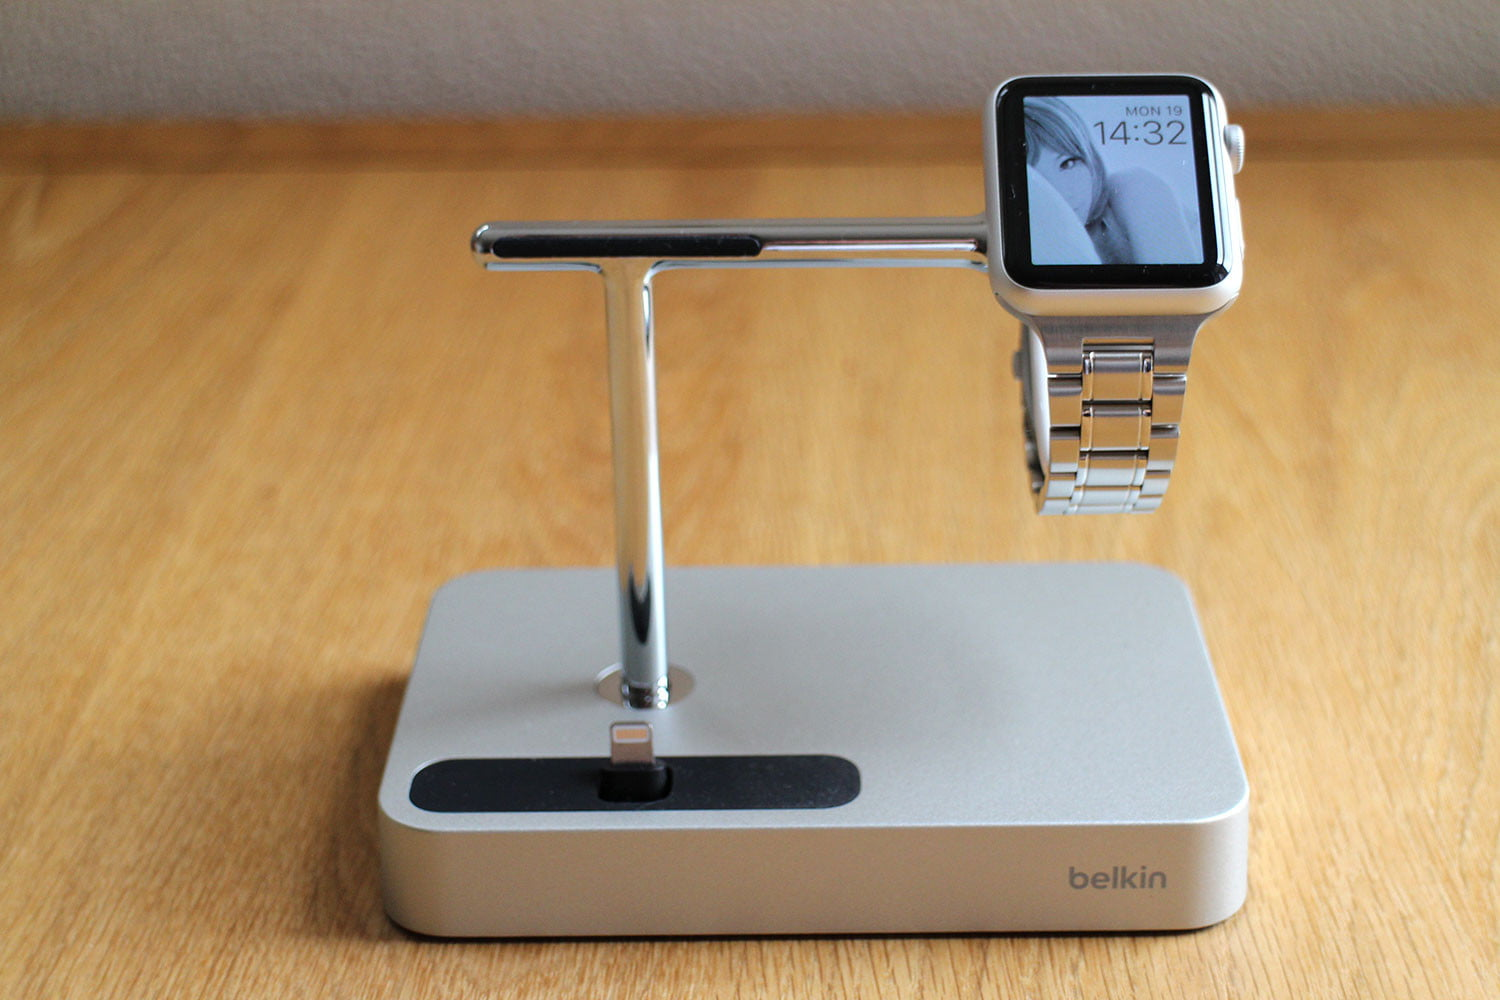 Belkin Iphone Watch Charger